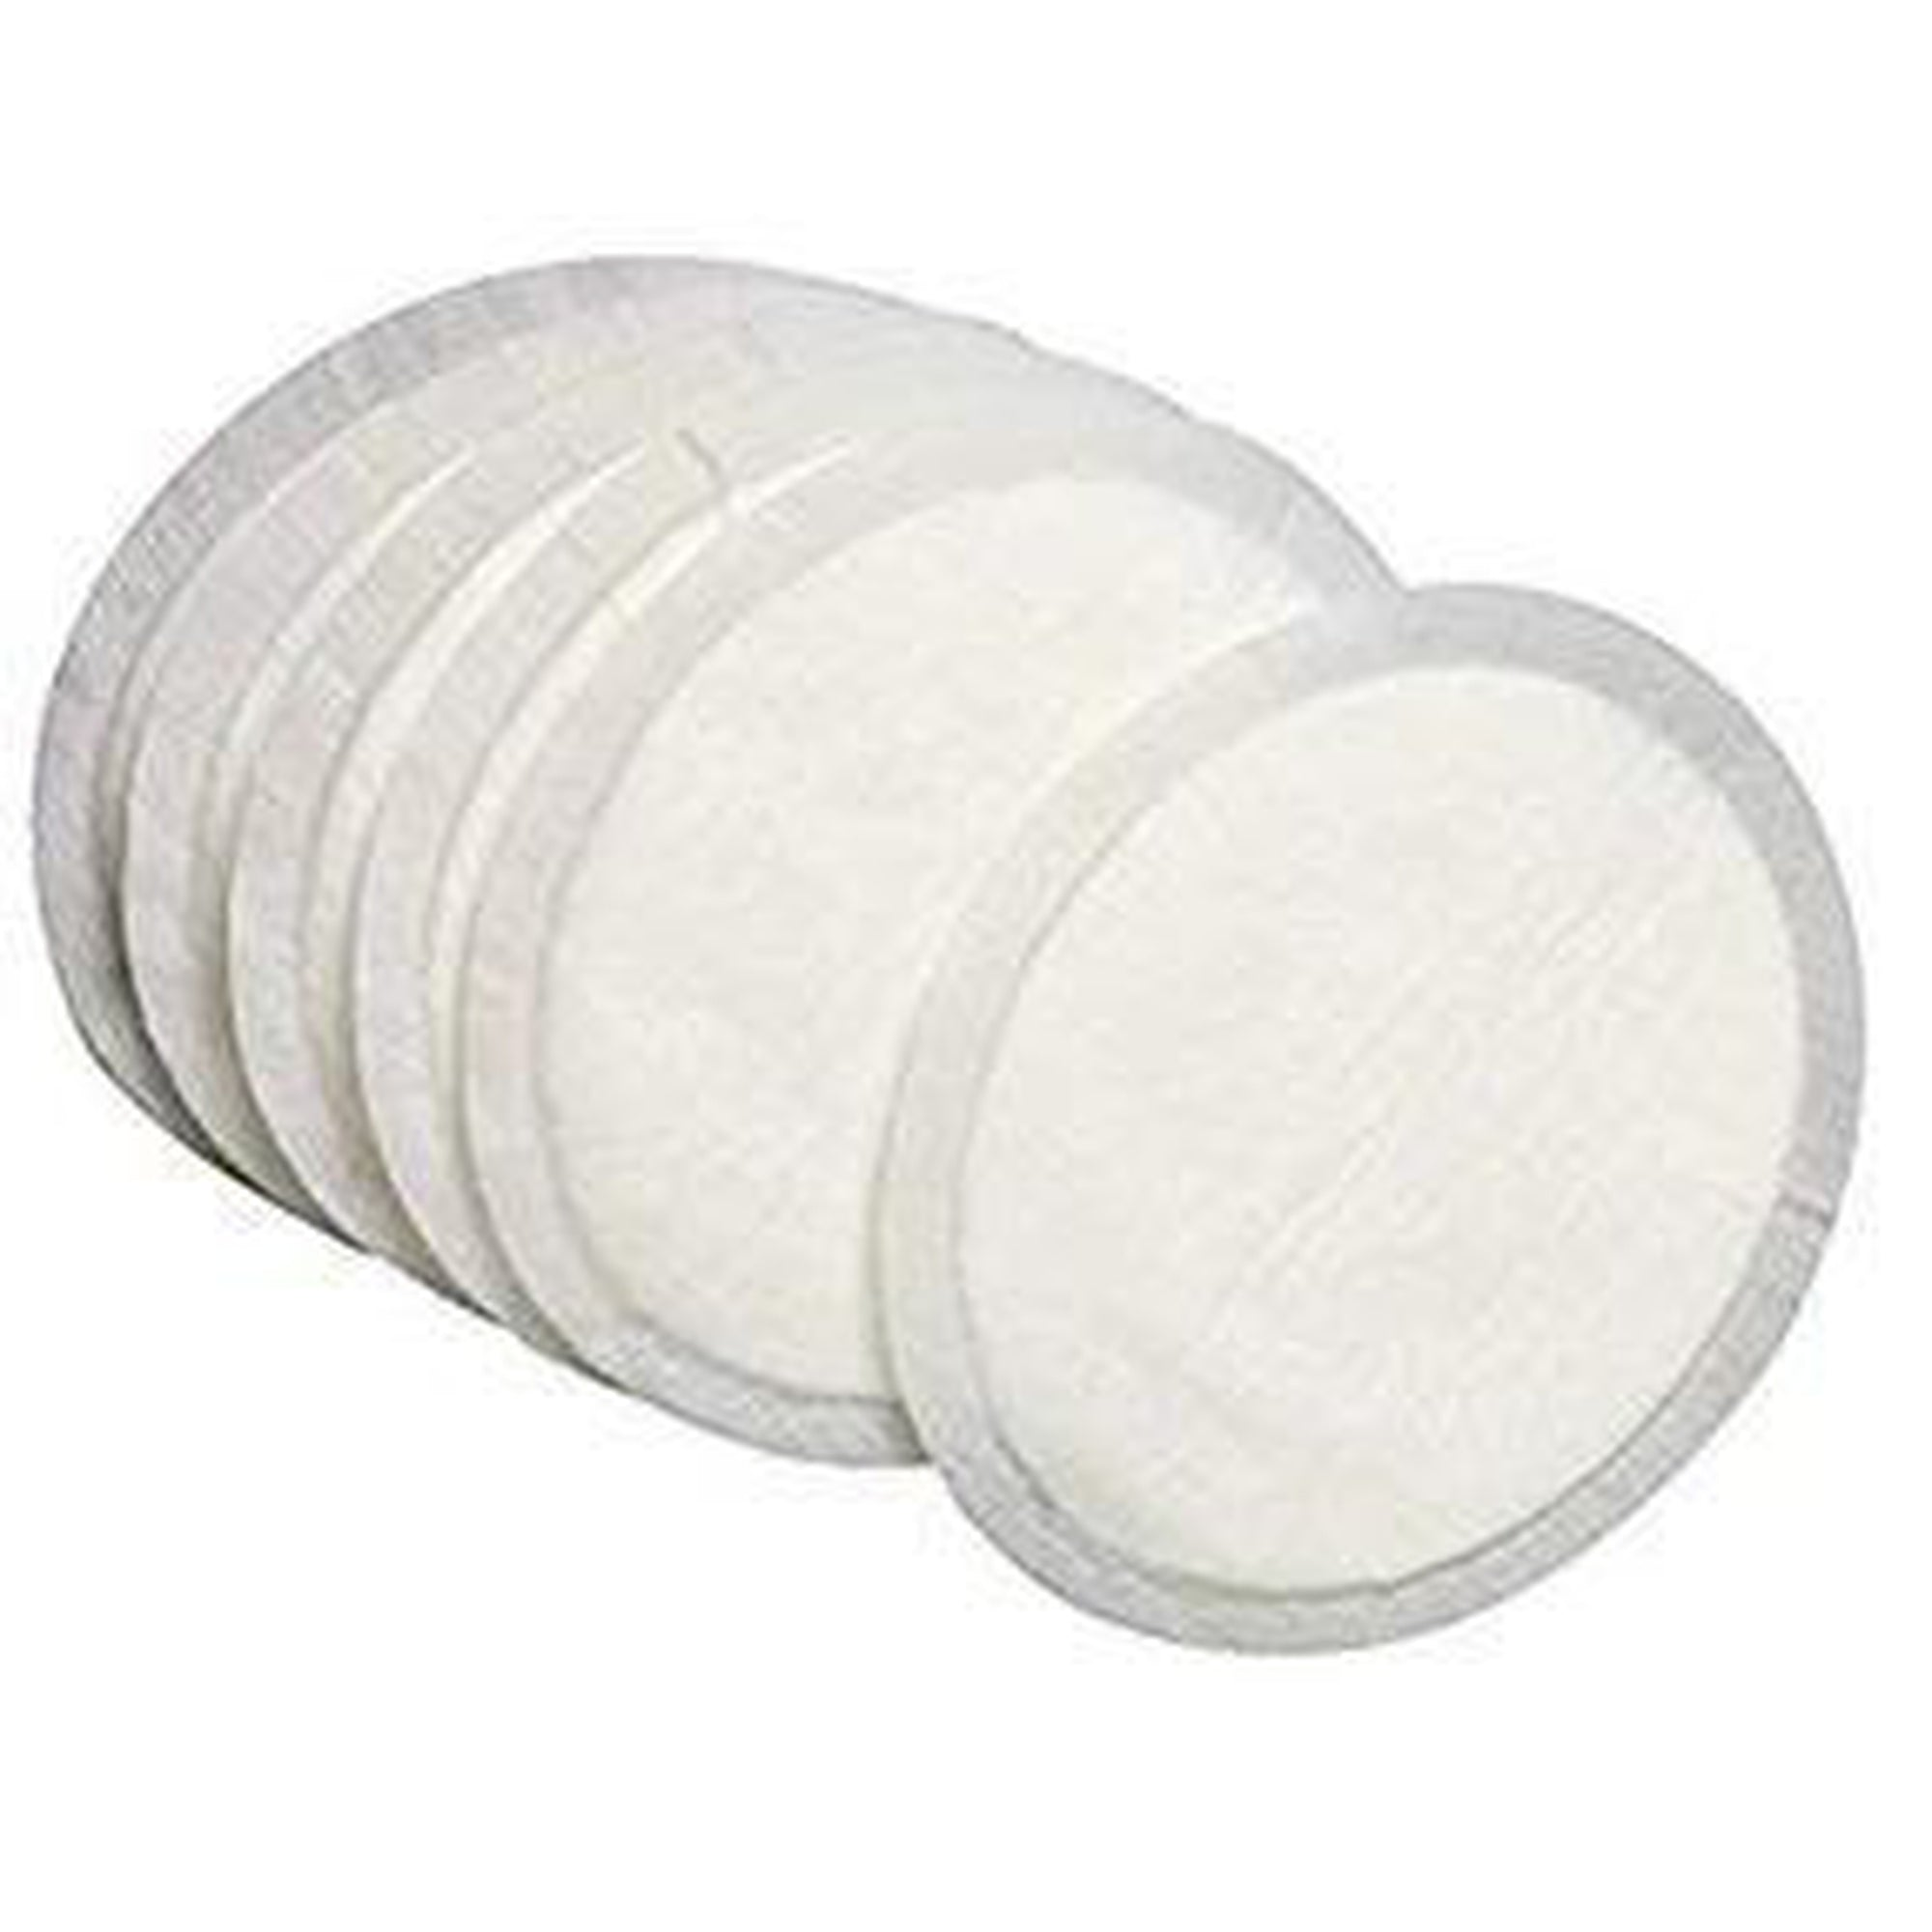 Dr. Brown's Disposable Breast Pad (Oval), 60-Pack-Breast Pads-Mother and Baby Shop Kenya's #1 Online Baby Shop